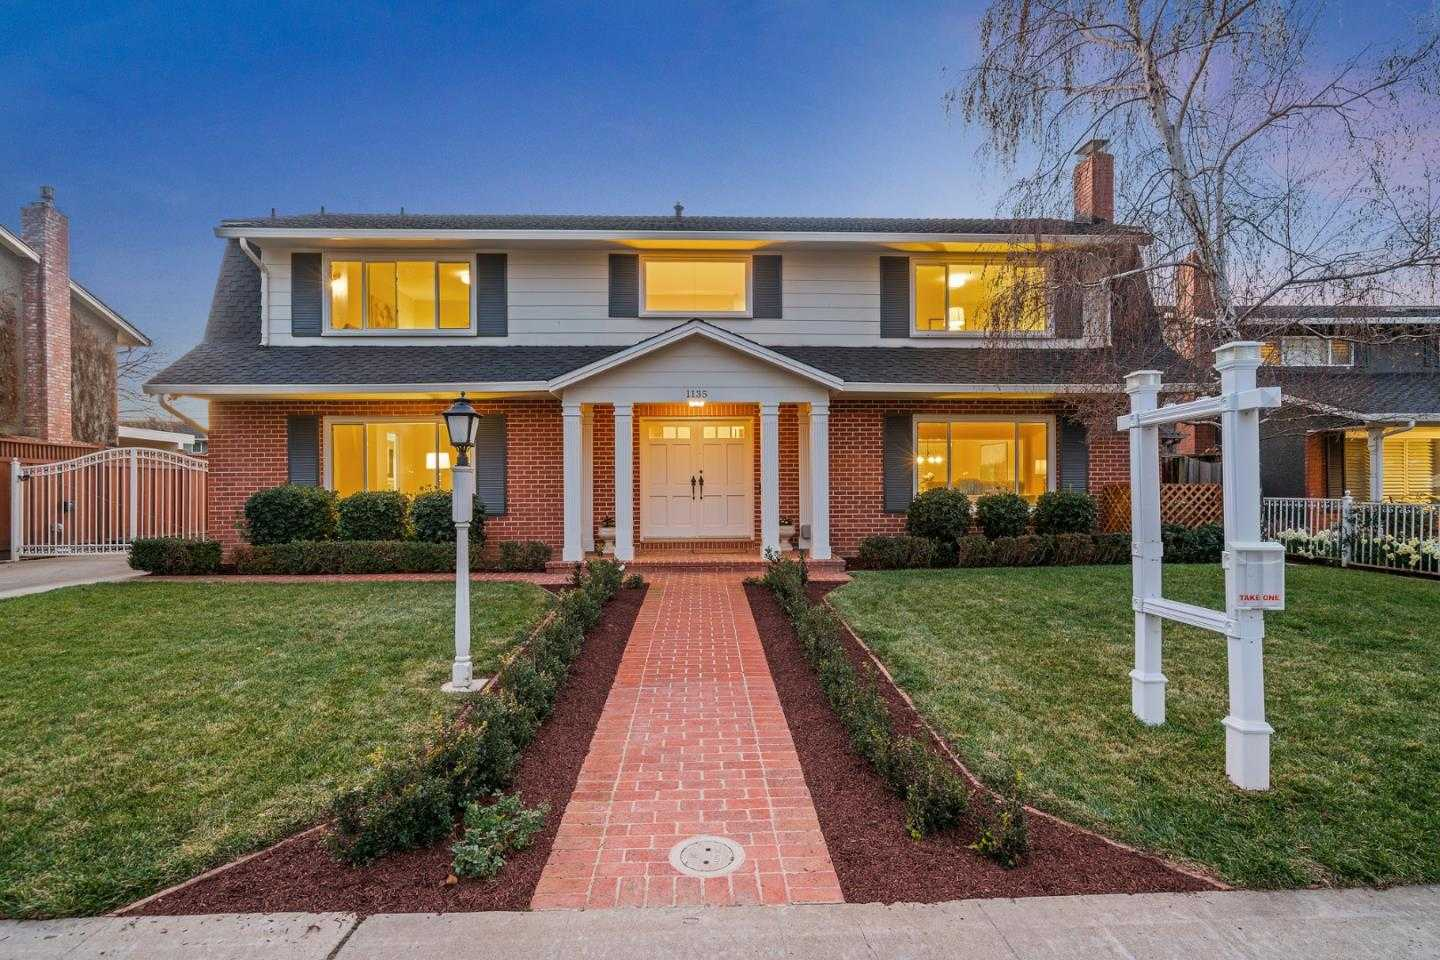 $1,849,000 - 5Br/3Ba -  for Sale in San Jose